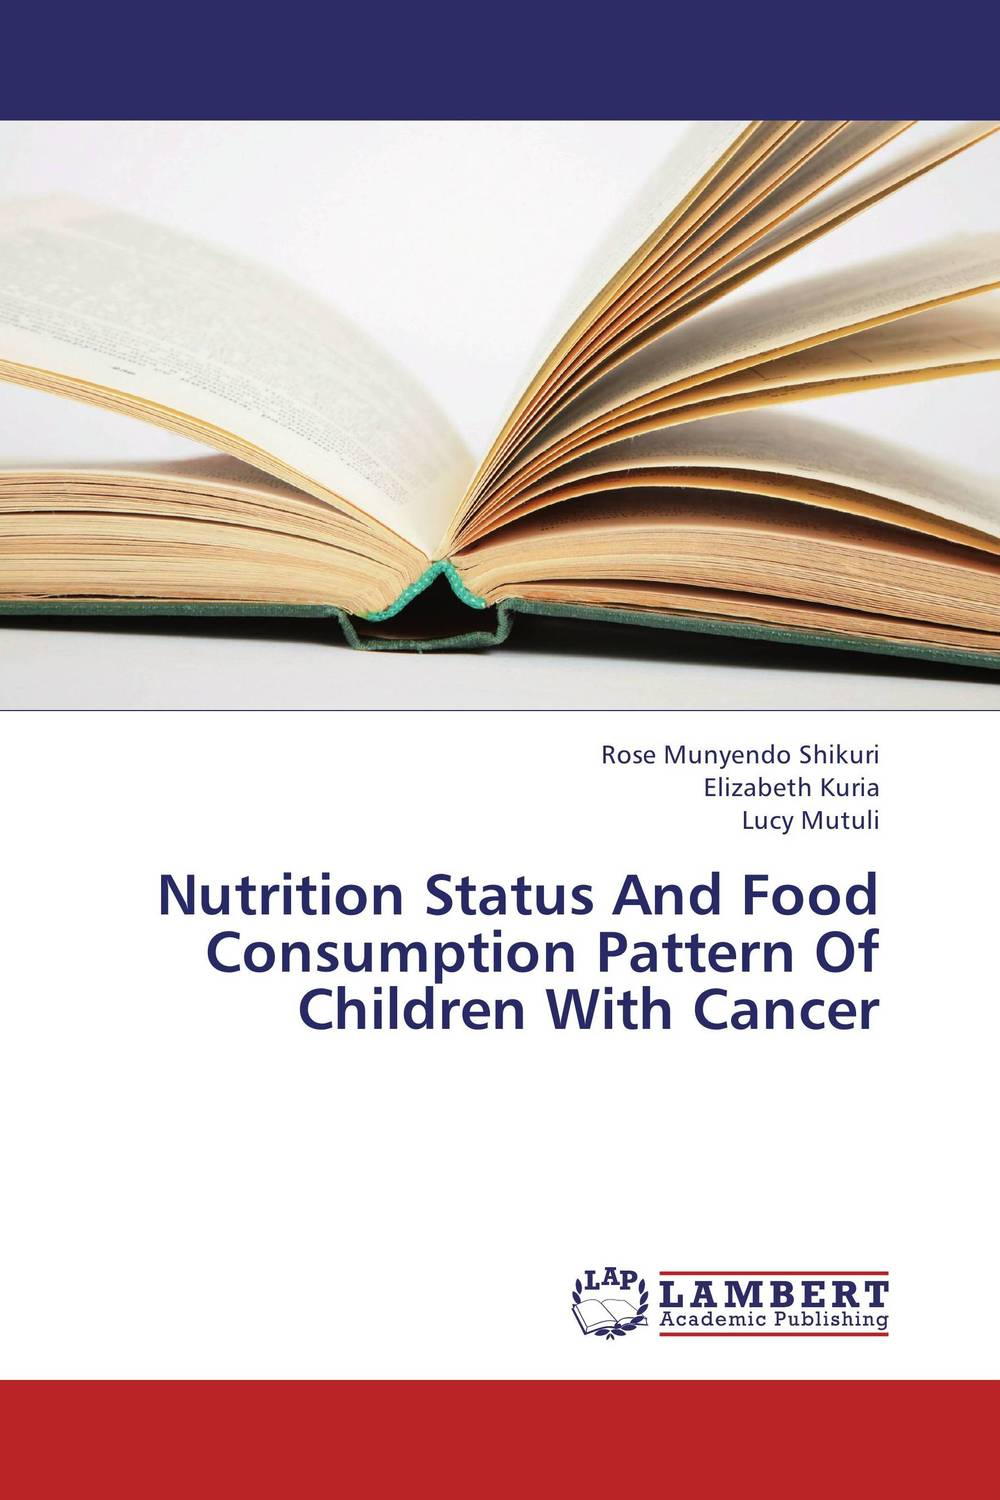 Nutrition Status And Food Consumption Pattern Of Children With Cancer